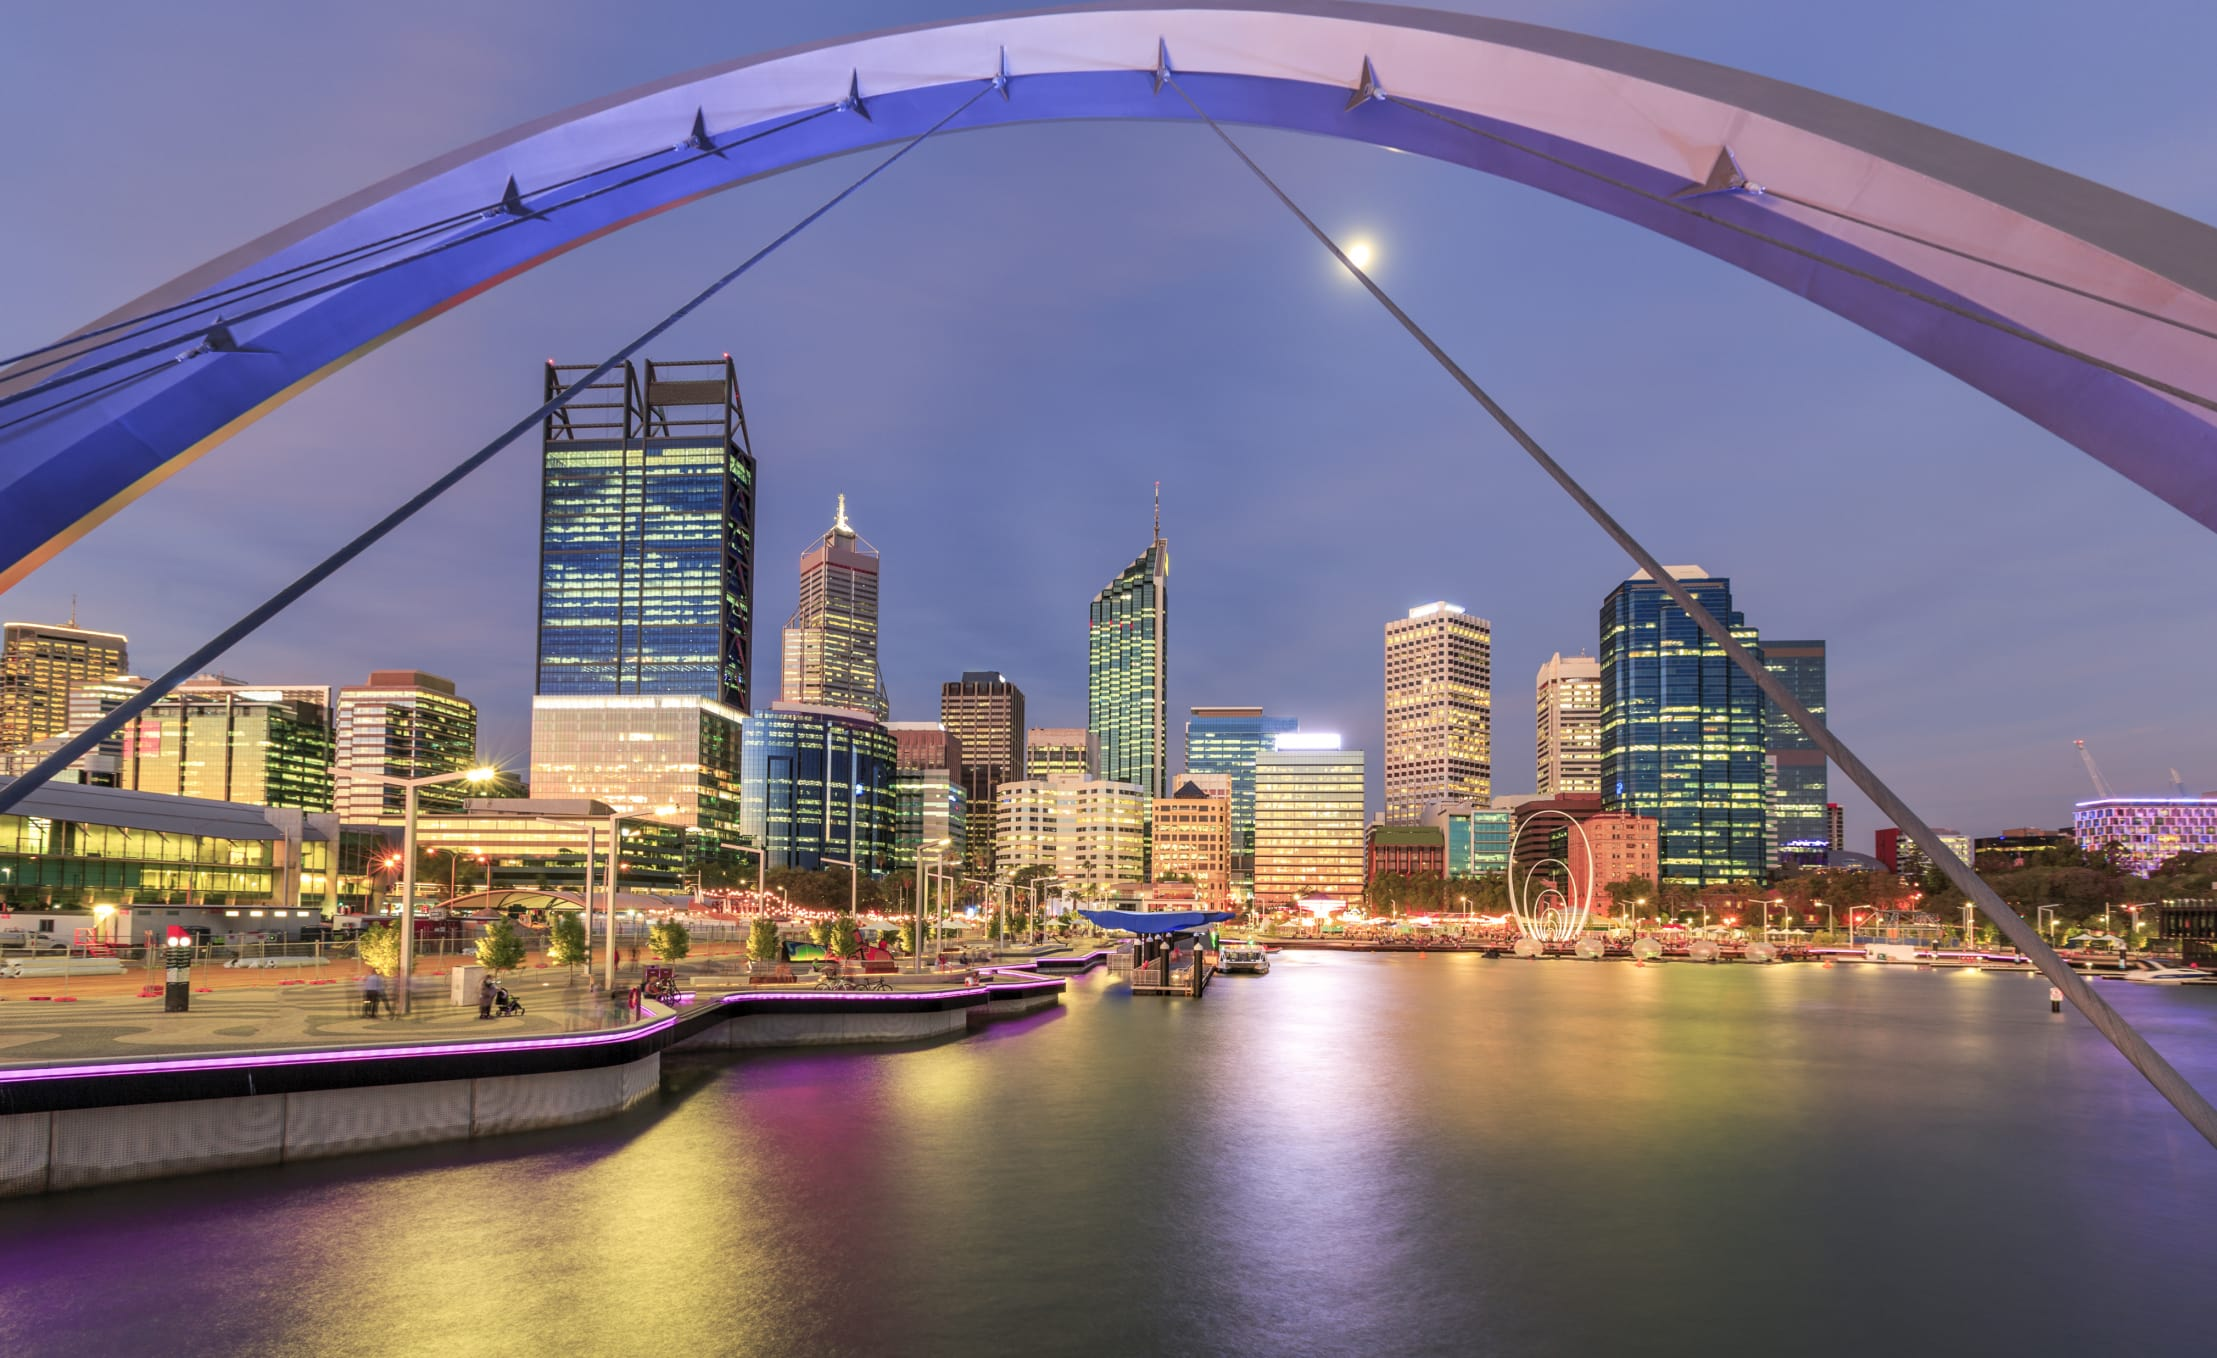 Elizabeth Quay – Perth Night Noodle Markets